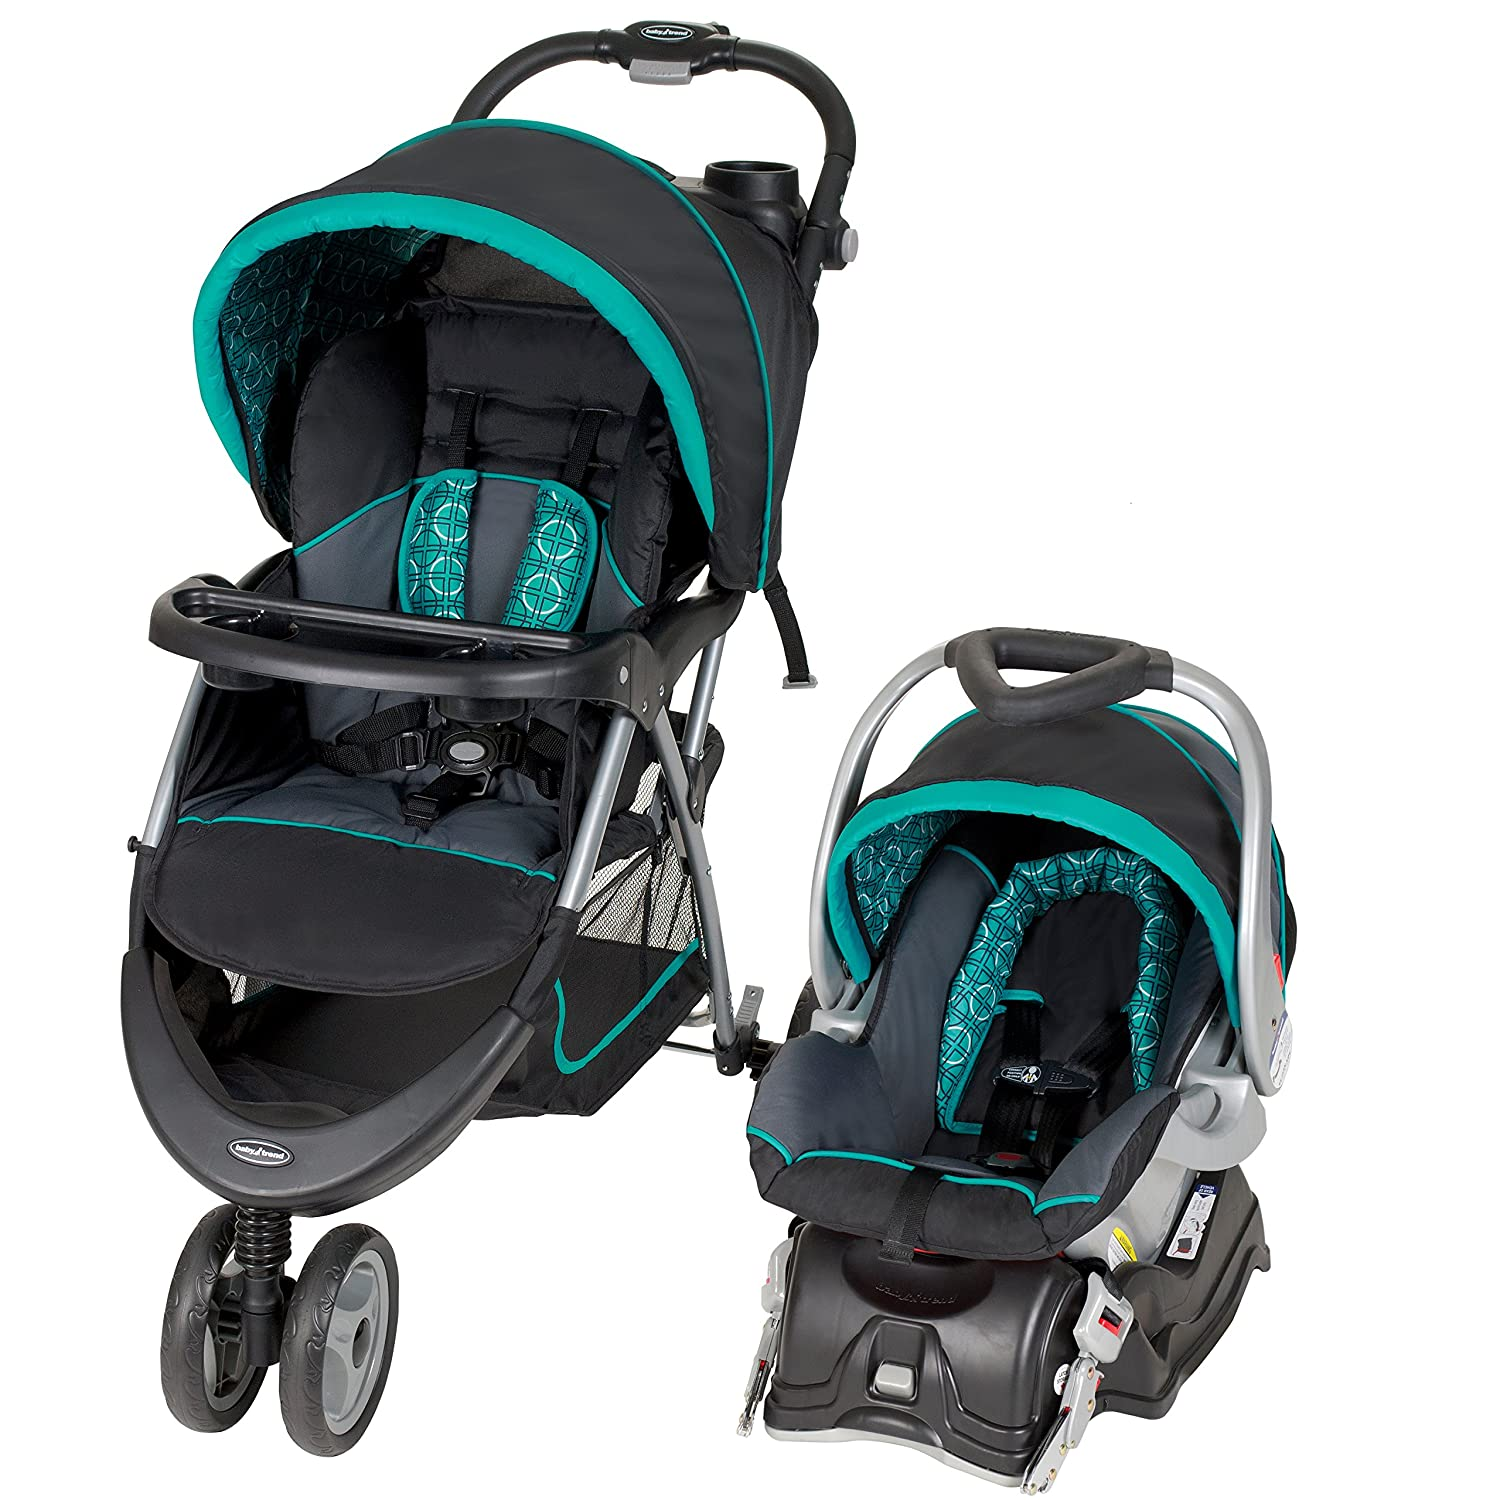 Baby Trend EZ Ride 5 Travel System, Helix TS40971